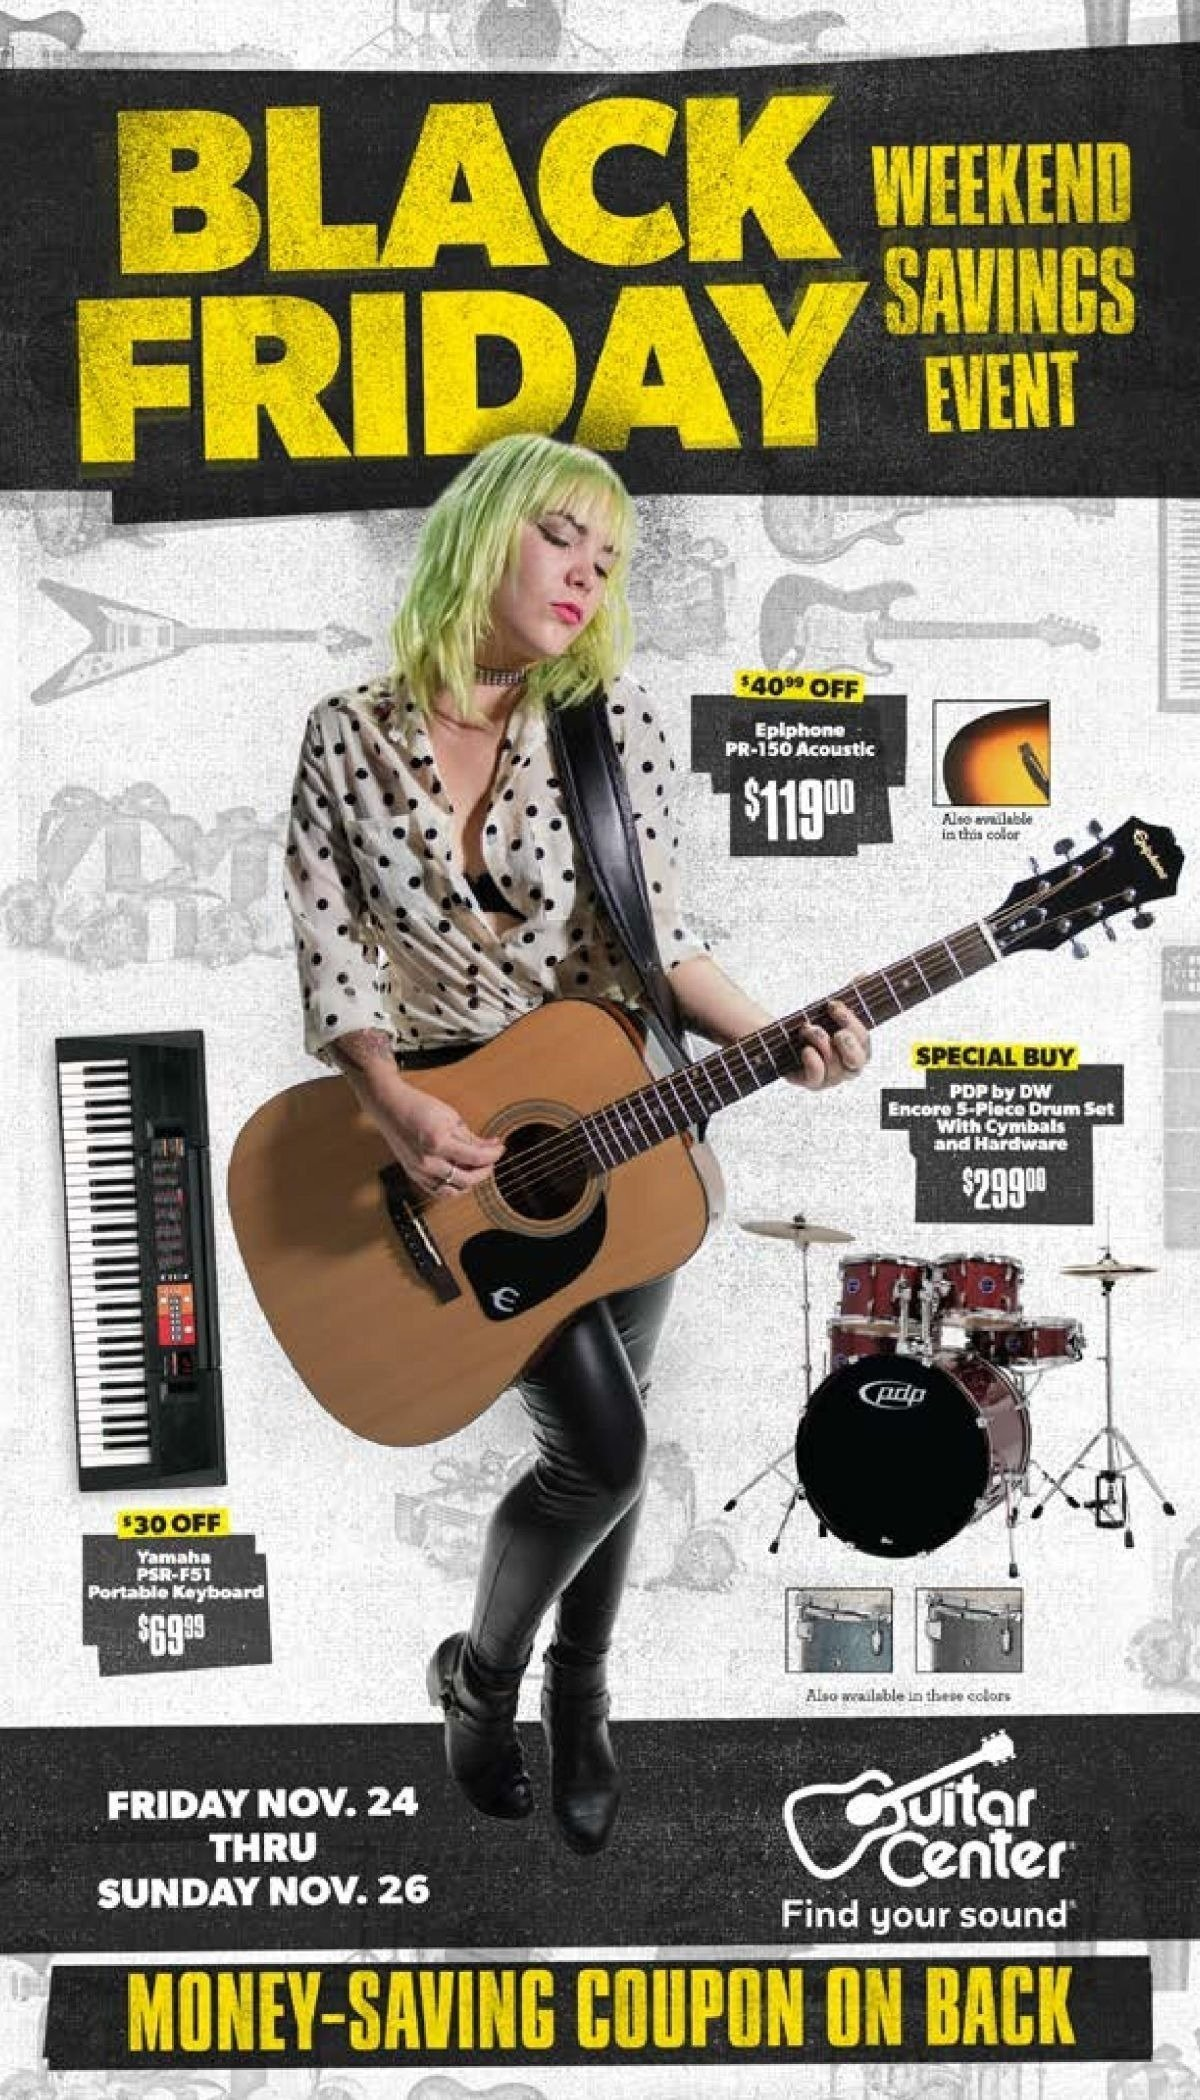 Get the best price on Clearance Sale at Guitar Center. Most Clearance Sale are eligible for free shipping.